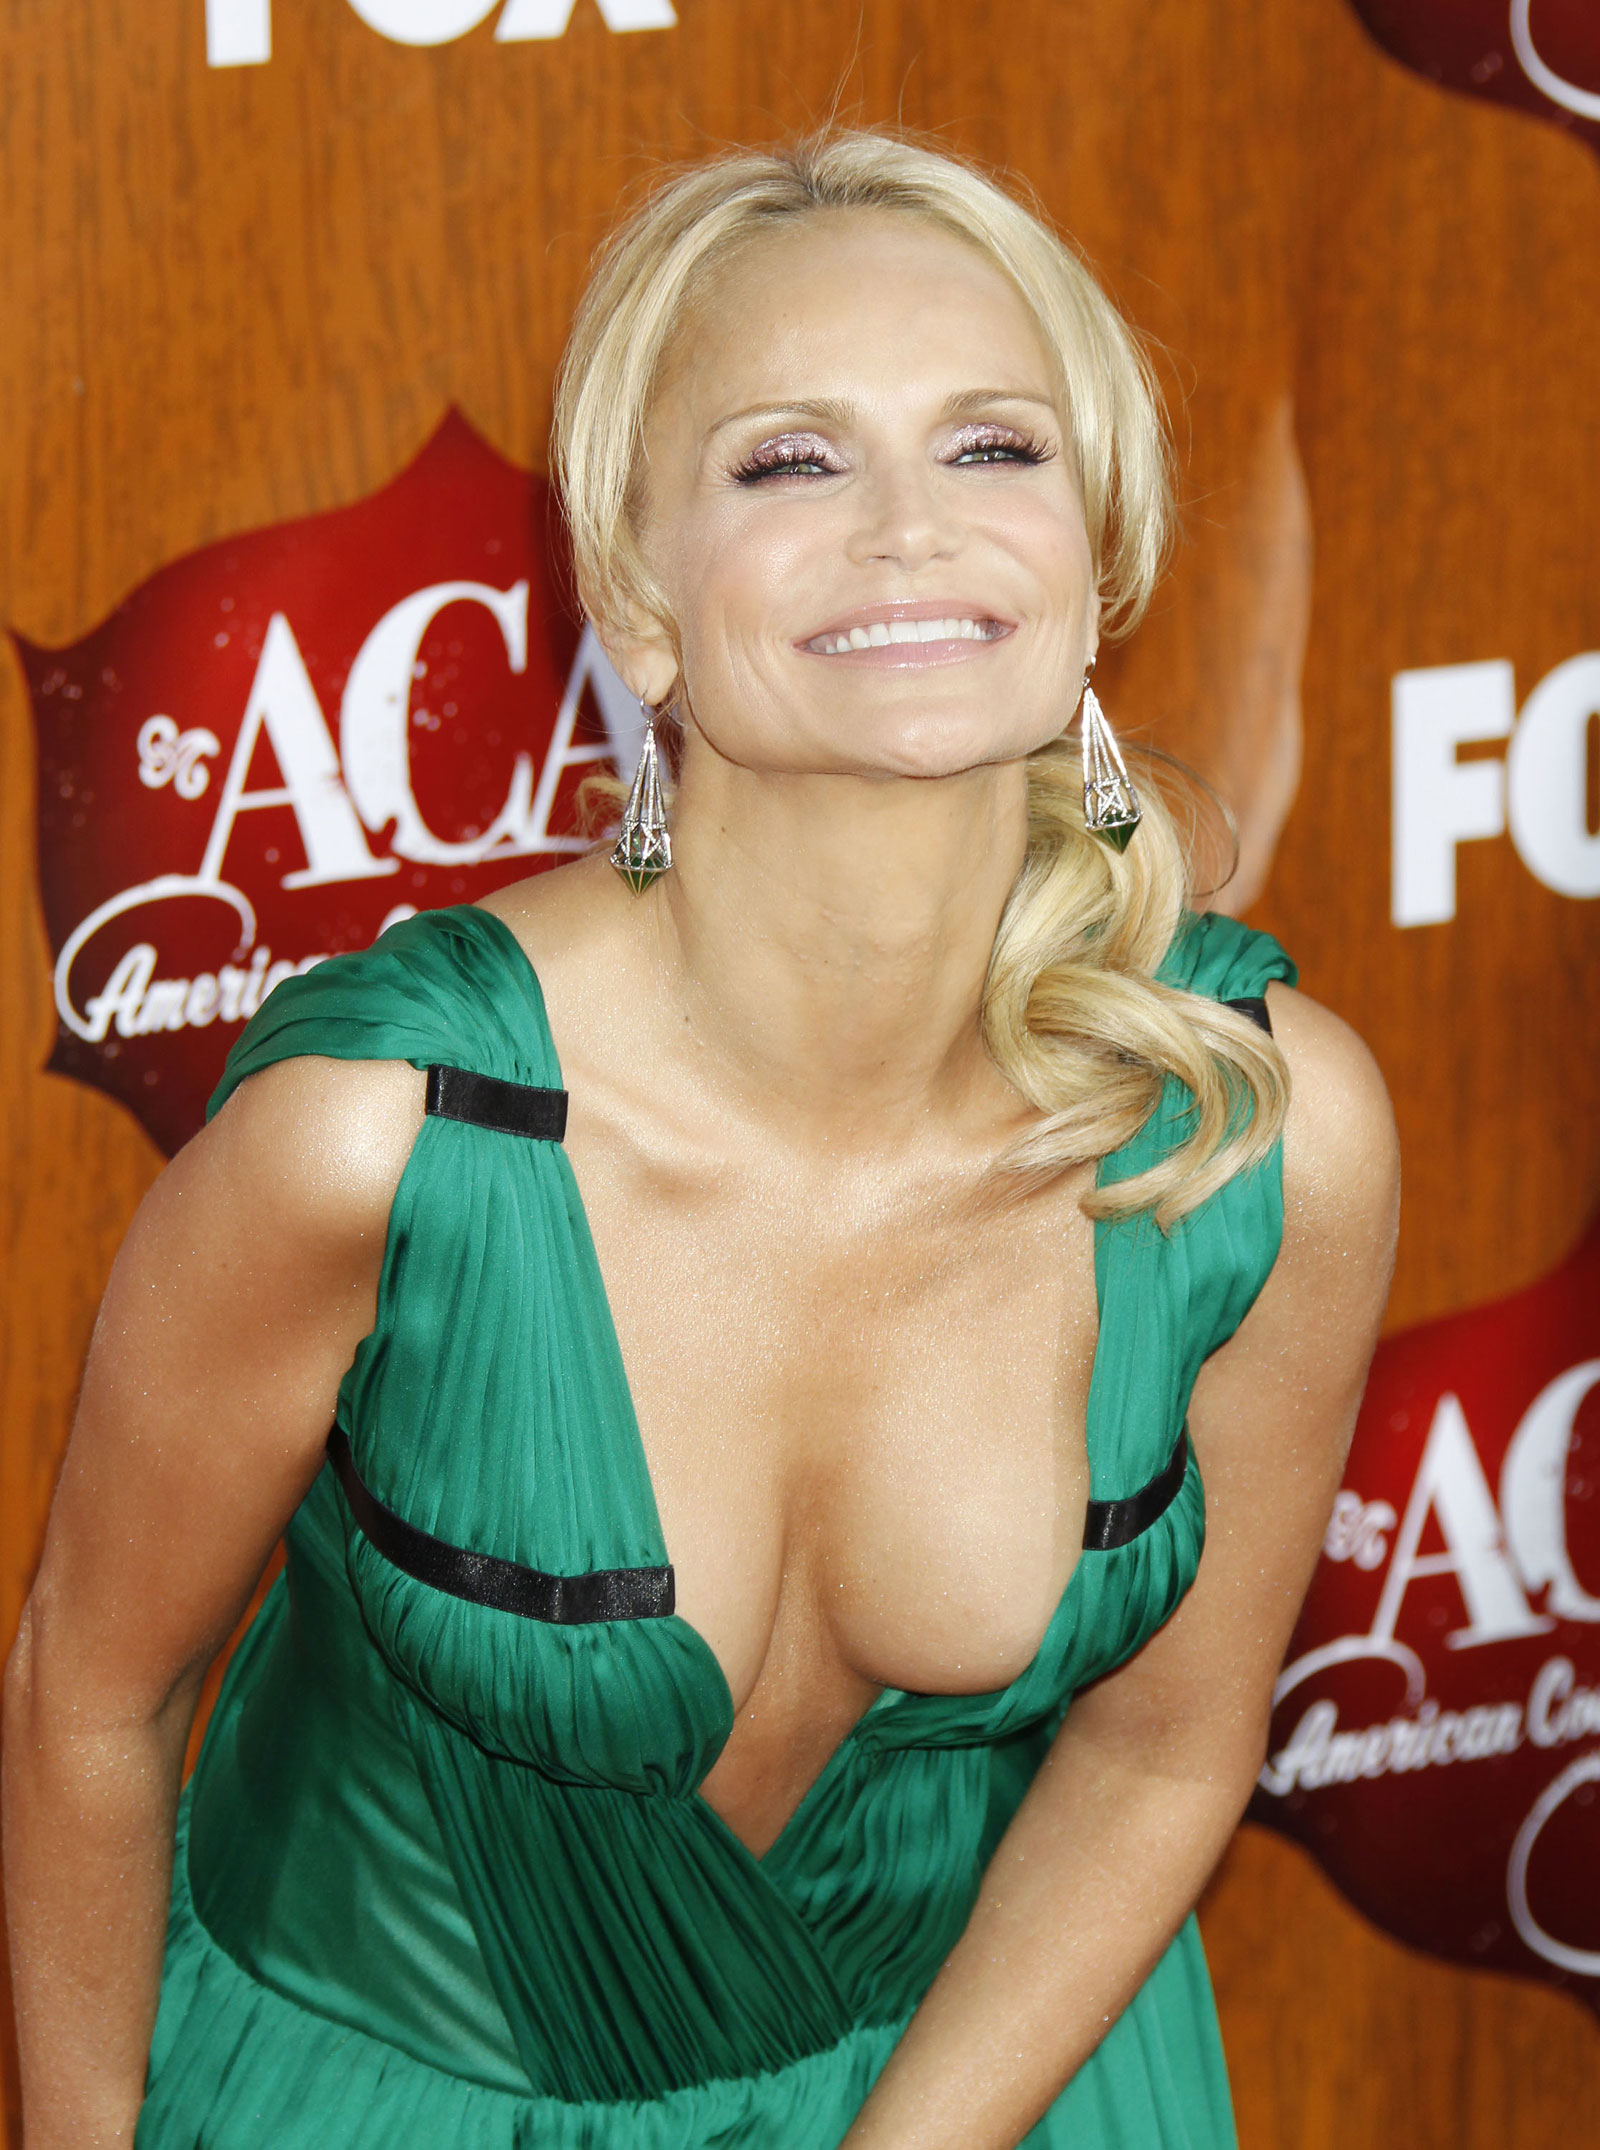 kristin chenoweth - maybe this timekristin chenoweth instagram, kristin chenoweth young, kristin chenoweth wiki, kristin chenoweth the art of elegance, kristin chenoweth jazz, kristin chenoweth hairspray, kristin chenoweth - maybe this time, kristin chenoweth witchy woman, kristin chenoweth defying gravity, kristin chenoweth tony, kristin chenoweth mother, kristin chenoweth fathers and daughters, kristin chenoweth and lee pace, kristin chenoweth evil like me, kristin chenoweth lift carry, kristin chenoweth gallery, kristin chenoweth address, kristin chenoweth forget about the boy, kristin chenoweth lyrics, kristin chenoweth tickets